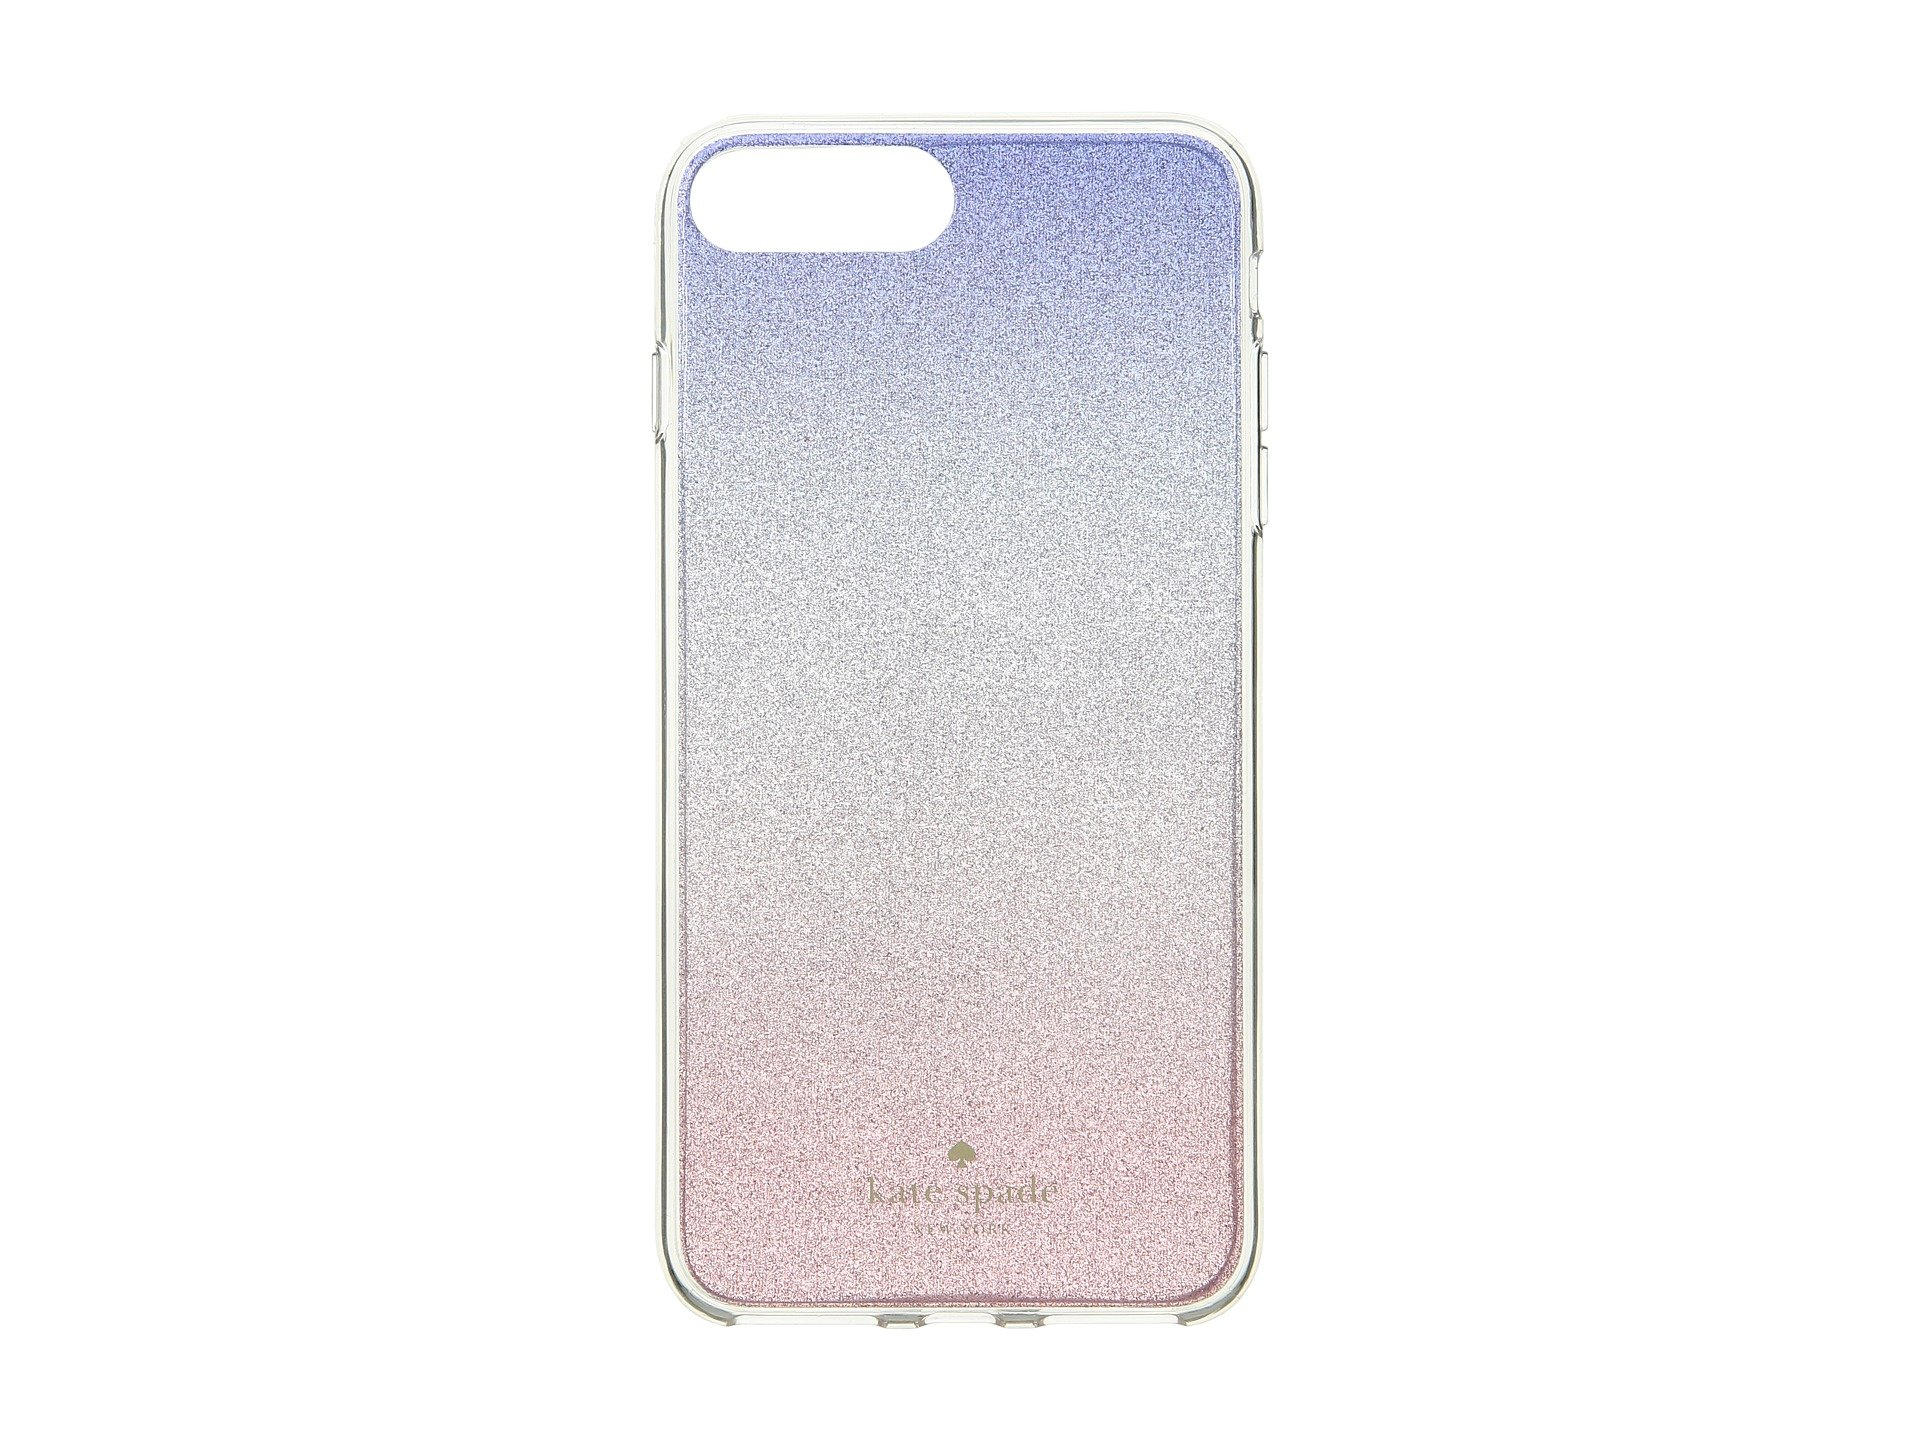 Accesorio para el Celular Kate Spade New York Sunset Glitter Ombre Phone Case for iPhone 8 Plus  + Kate Spade New York en VeoyCompro.net